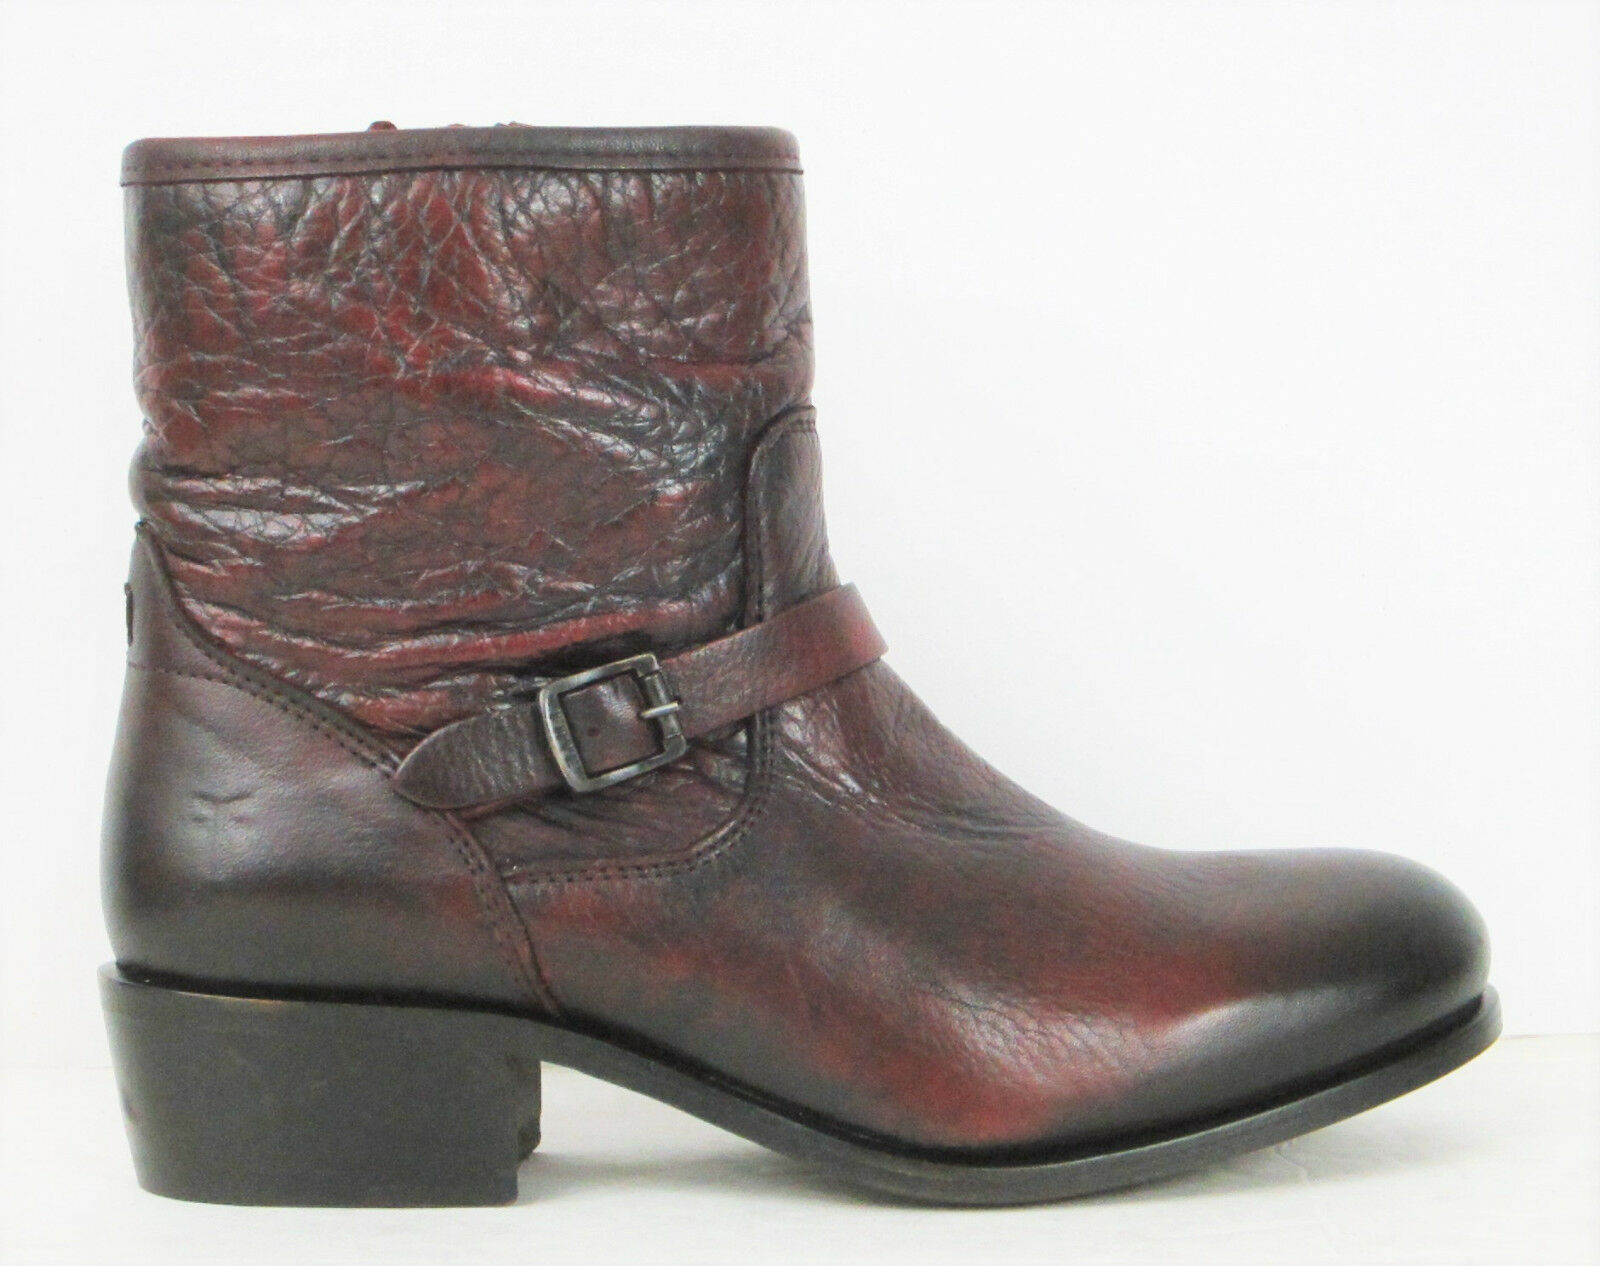 FRYE BOOTS Lynn Strap Short Burnt Red Leather Boots 76104 SZ 7.5 $318